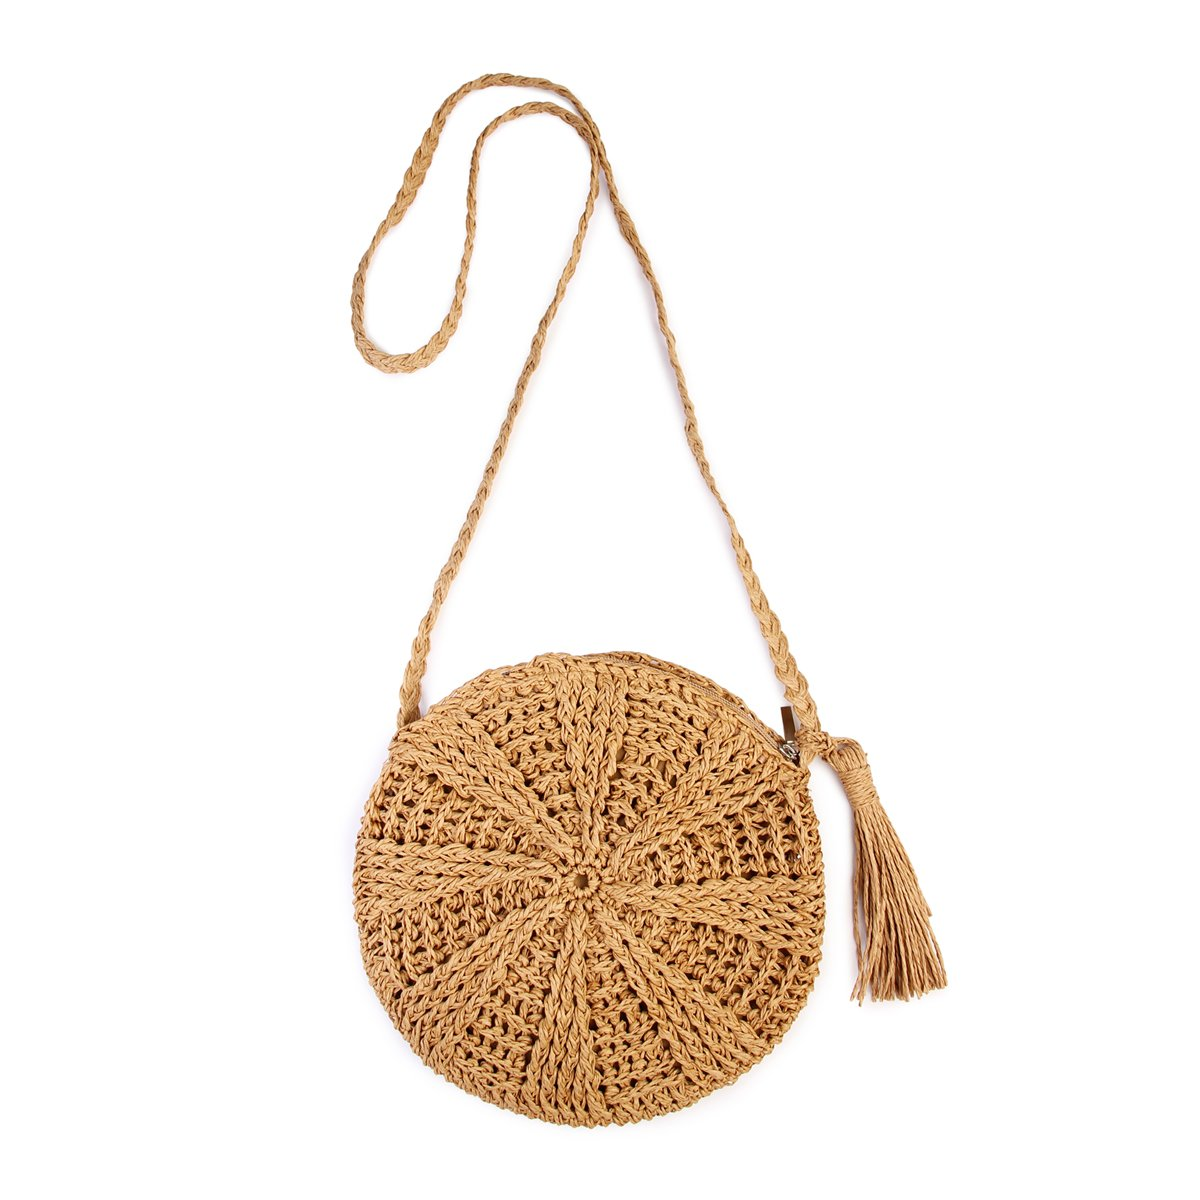 FGGS-Rattan Crochet Straw Woven Basket Bali Handbag Round Circle Crossbody Shopper Beach Tote BagFGGS-Rattan Crochet Straw Woven Basket Bali Handbag Round Circle Crossbody Shopper Beach Tote Bag